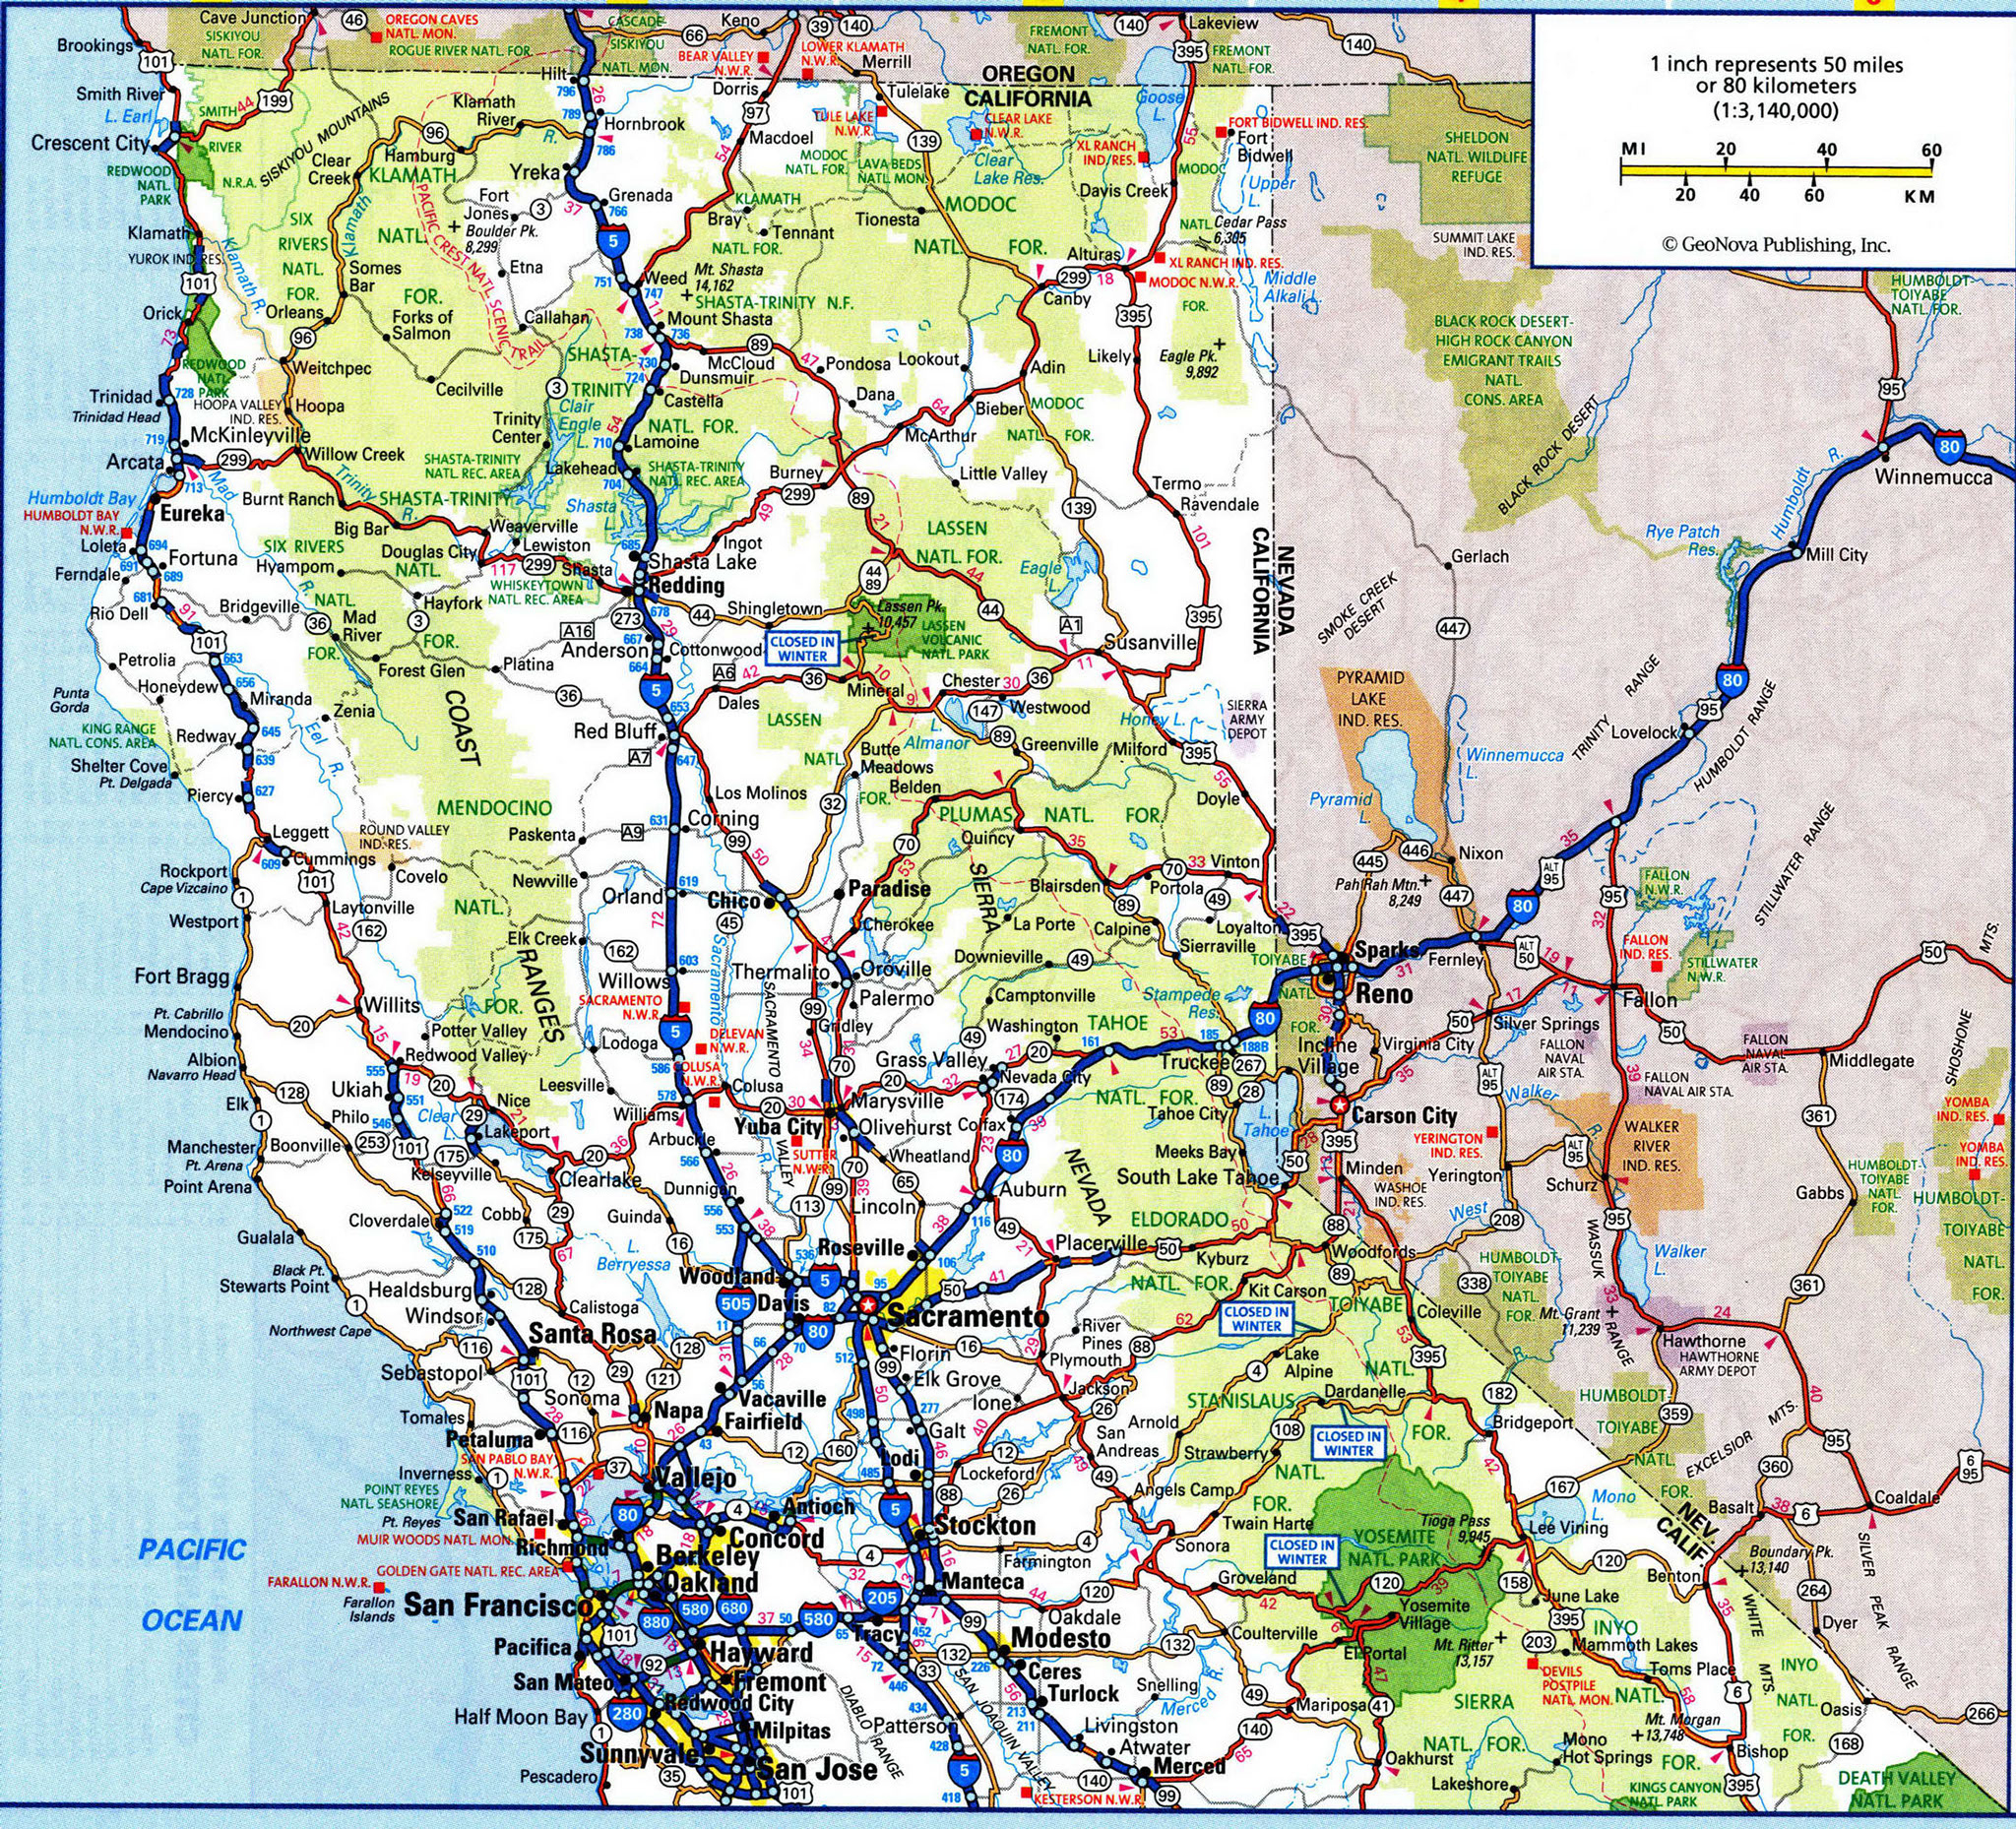 Map Of North California California River Map Northern California - Road Map Of Northern California Coast